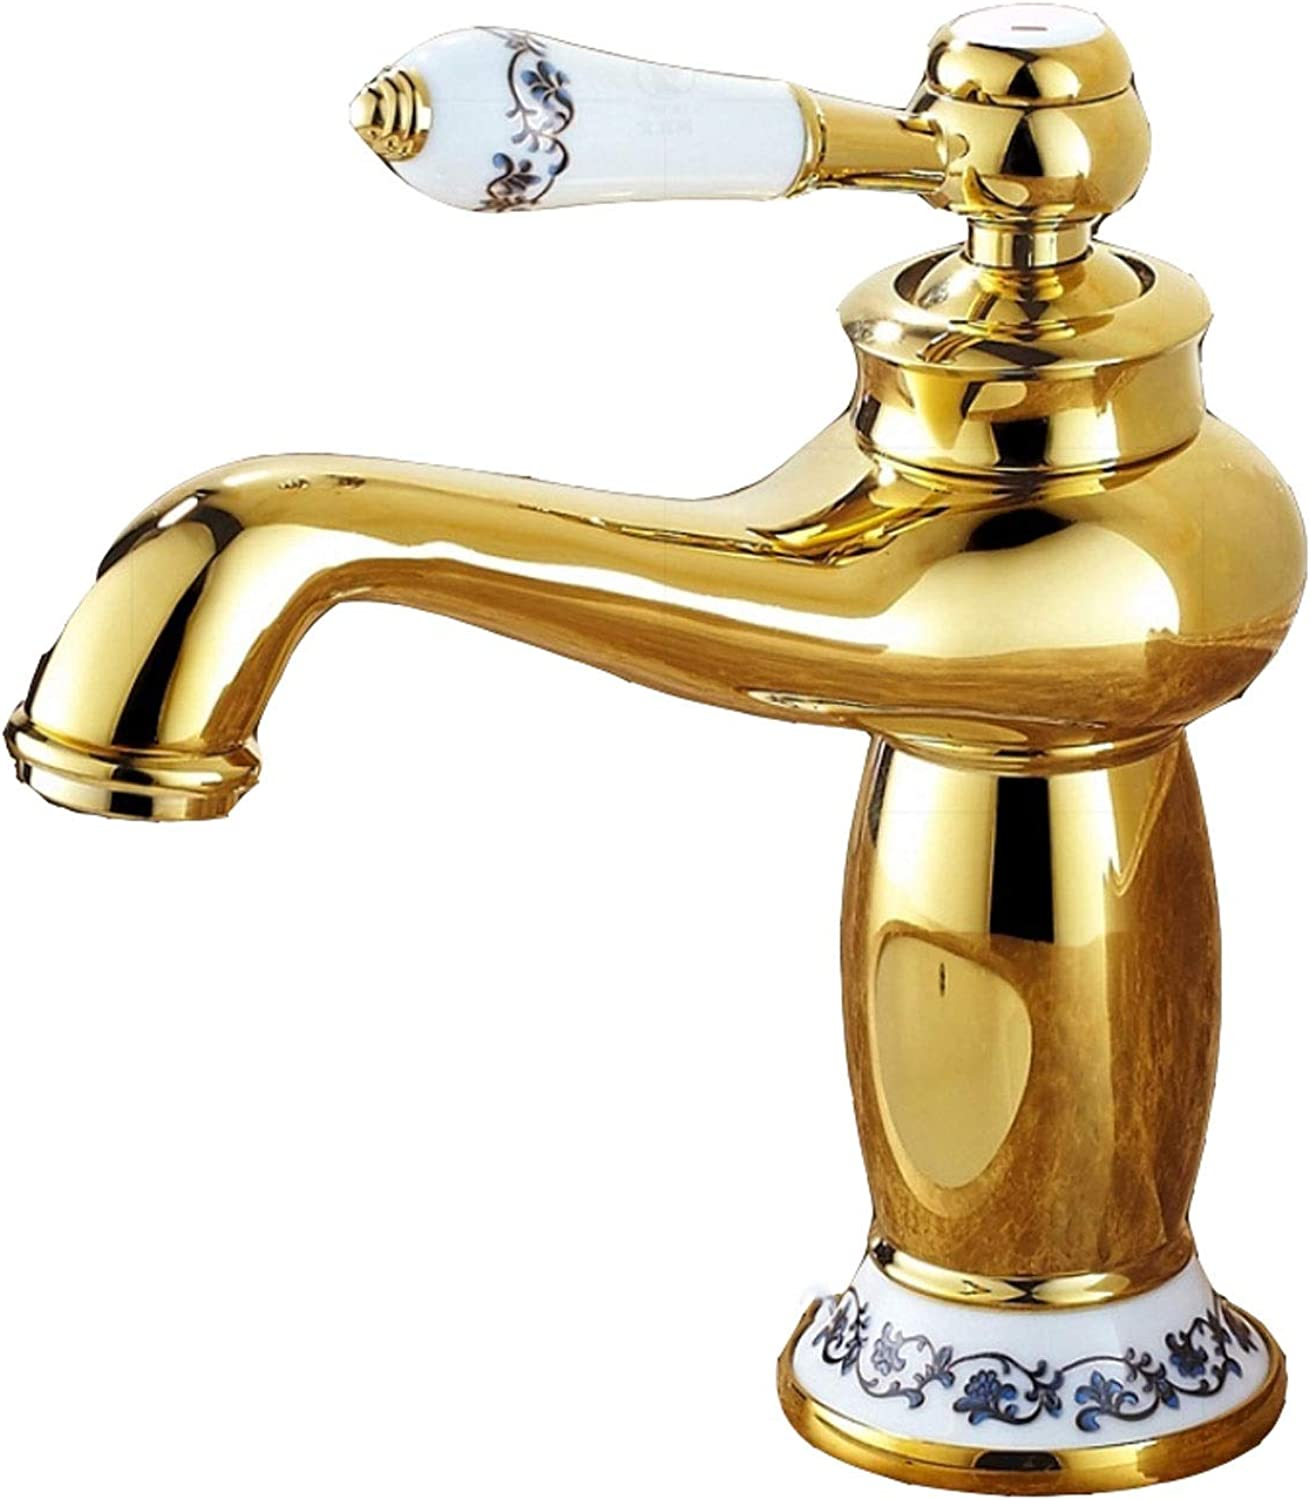 Kitchen Sink Taps ZQG European antique copper gold basin ceramic handle hot and cold water faucet Faucet